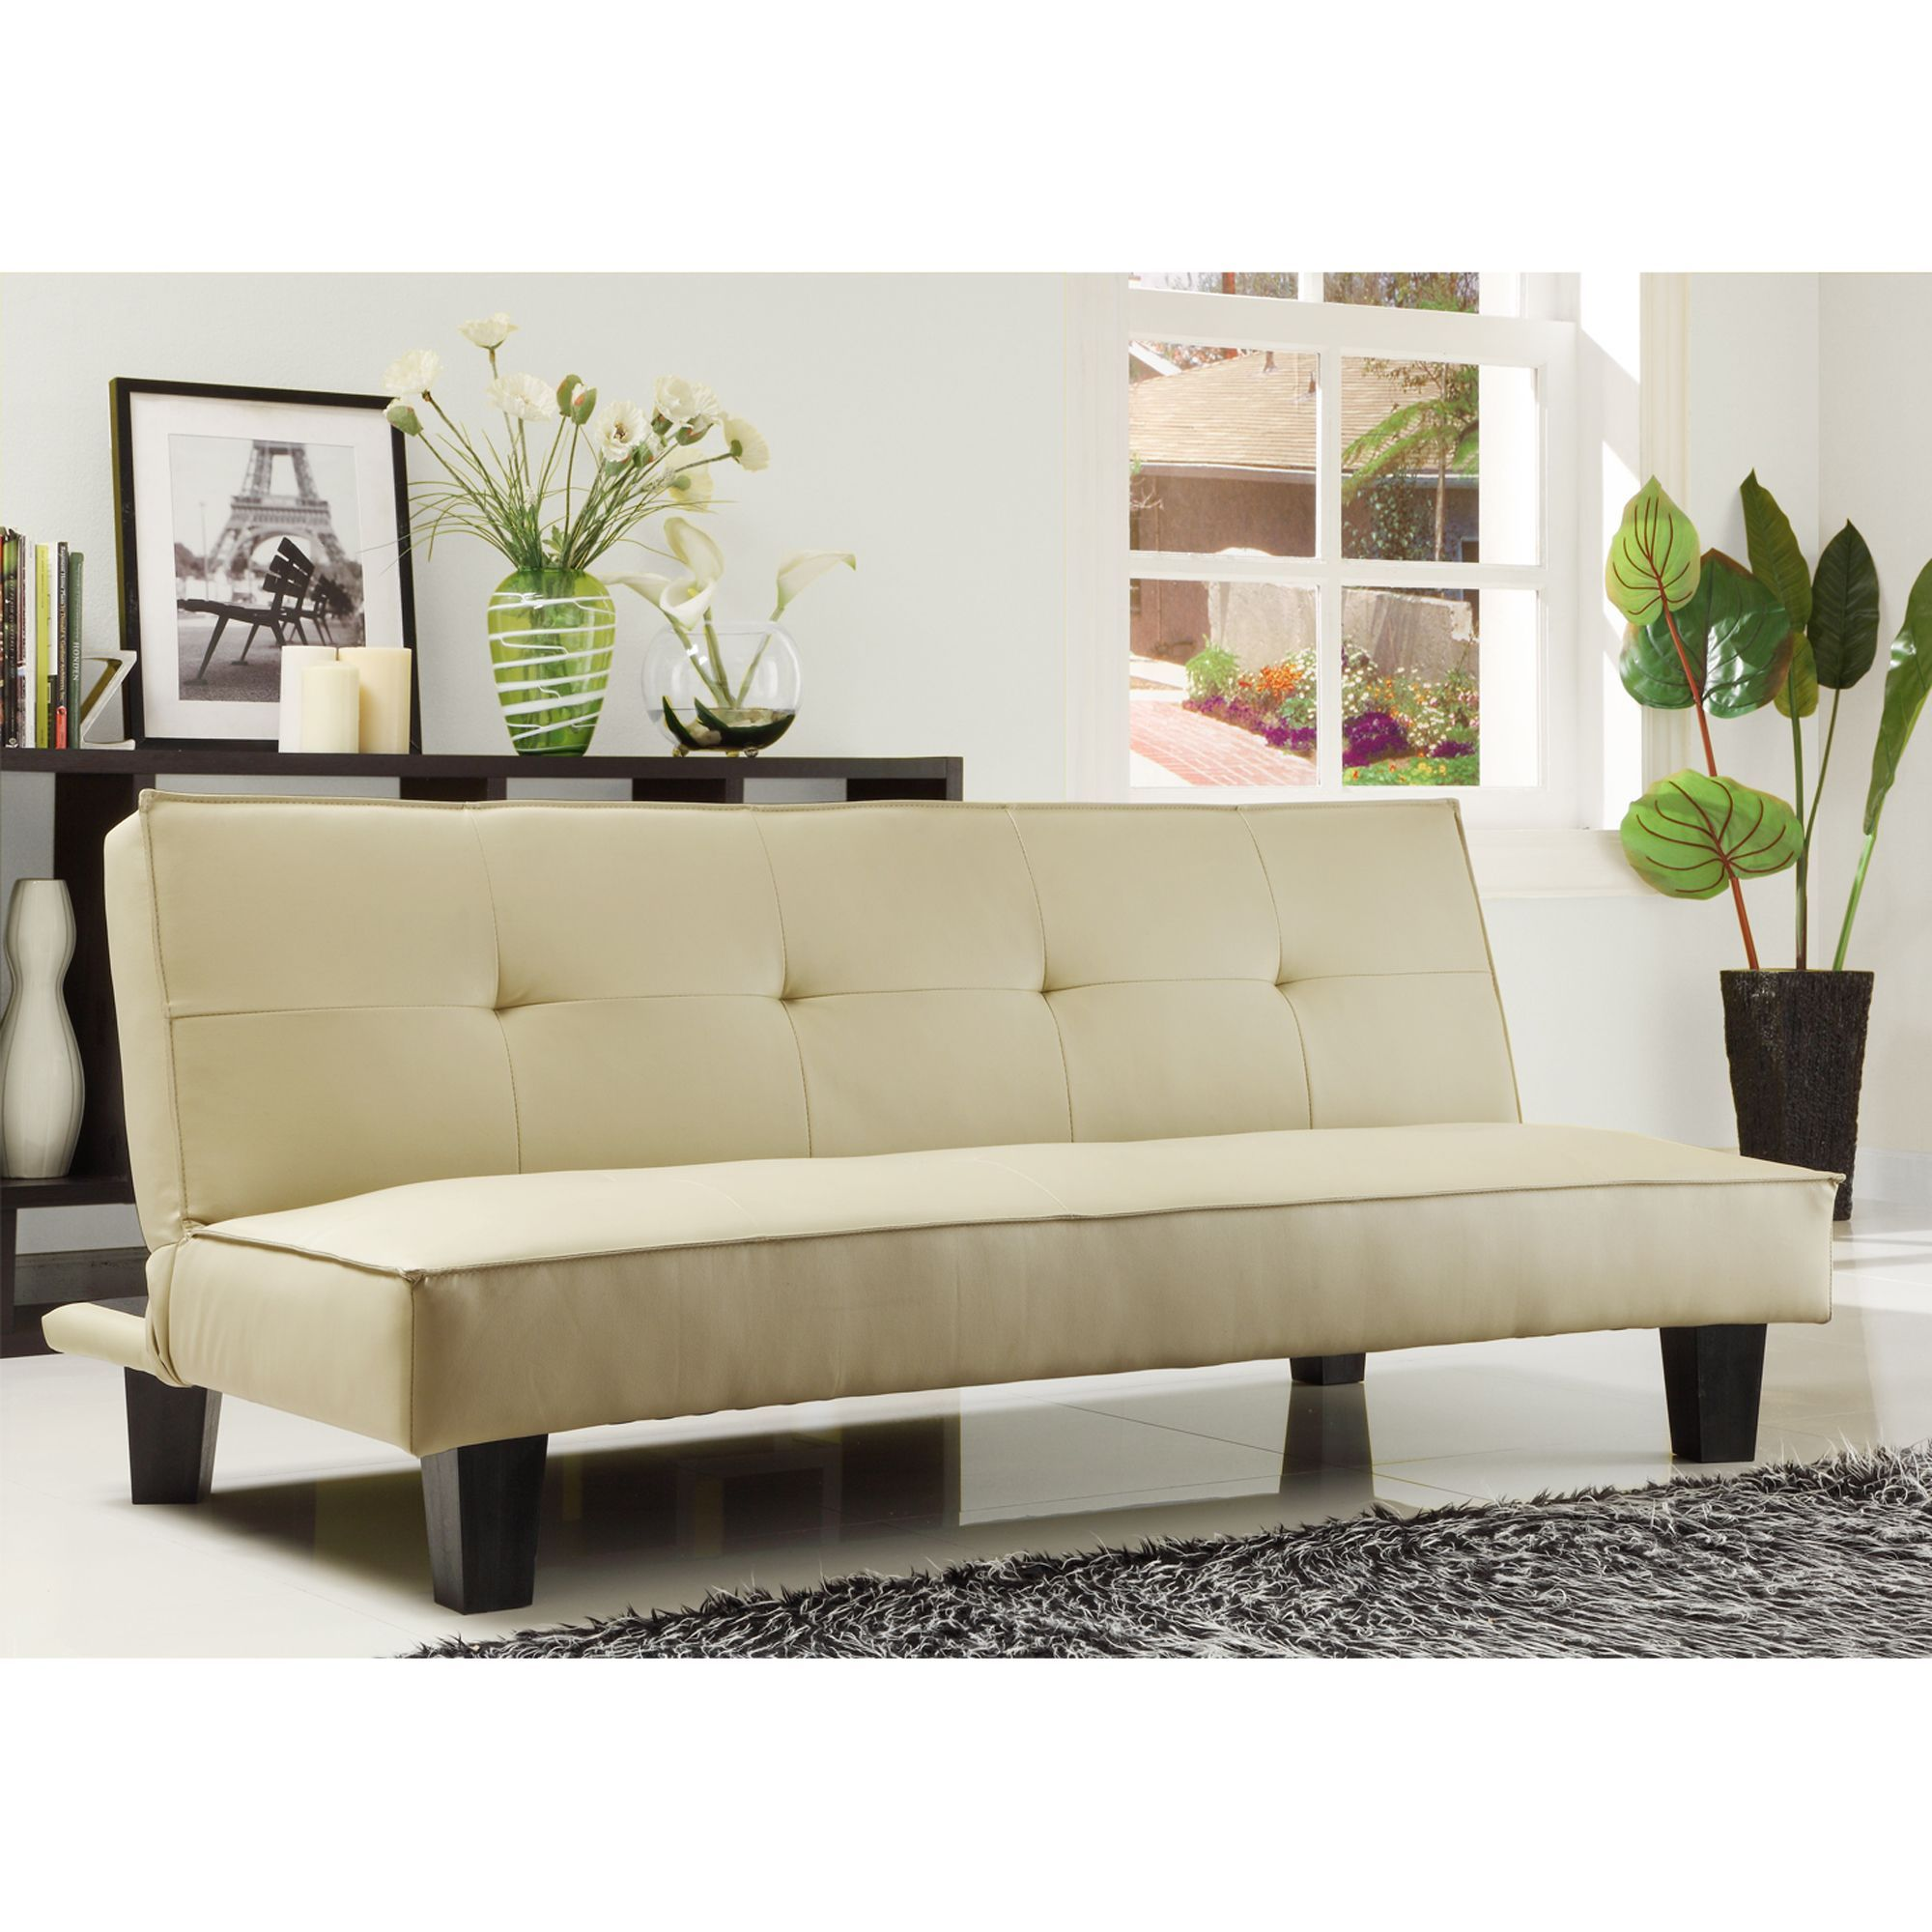 This INSPIRE Q sofa bed adds a contemporary style and convenience to your  home. Select